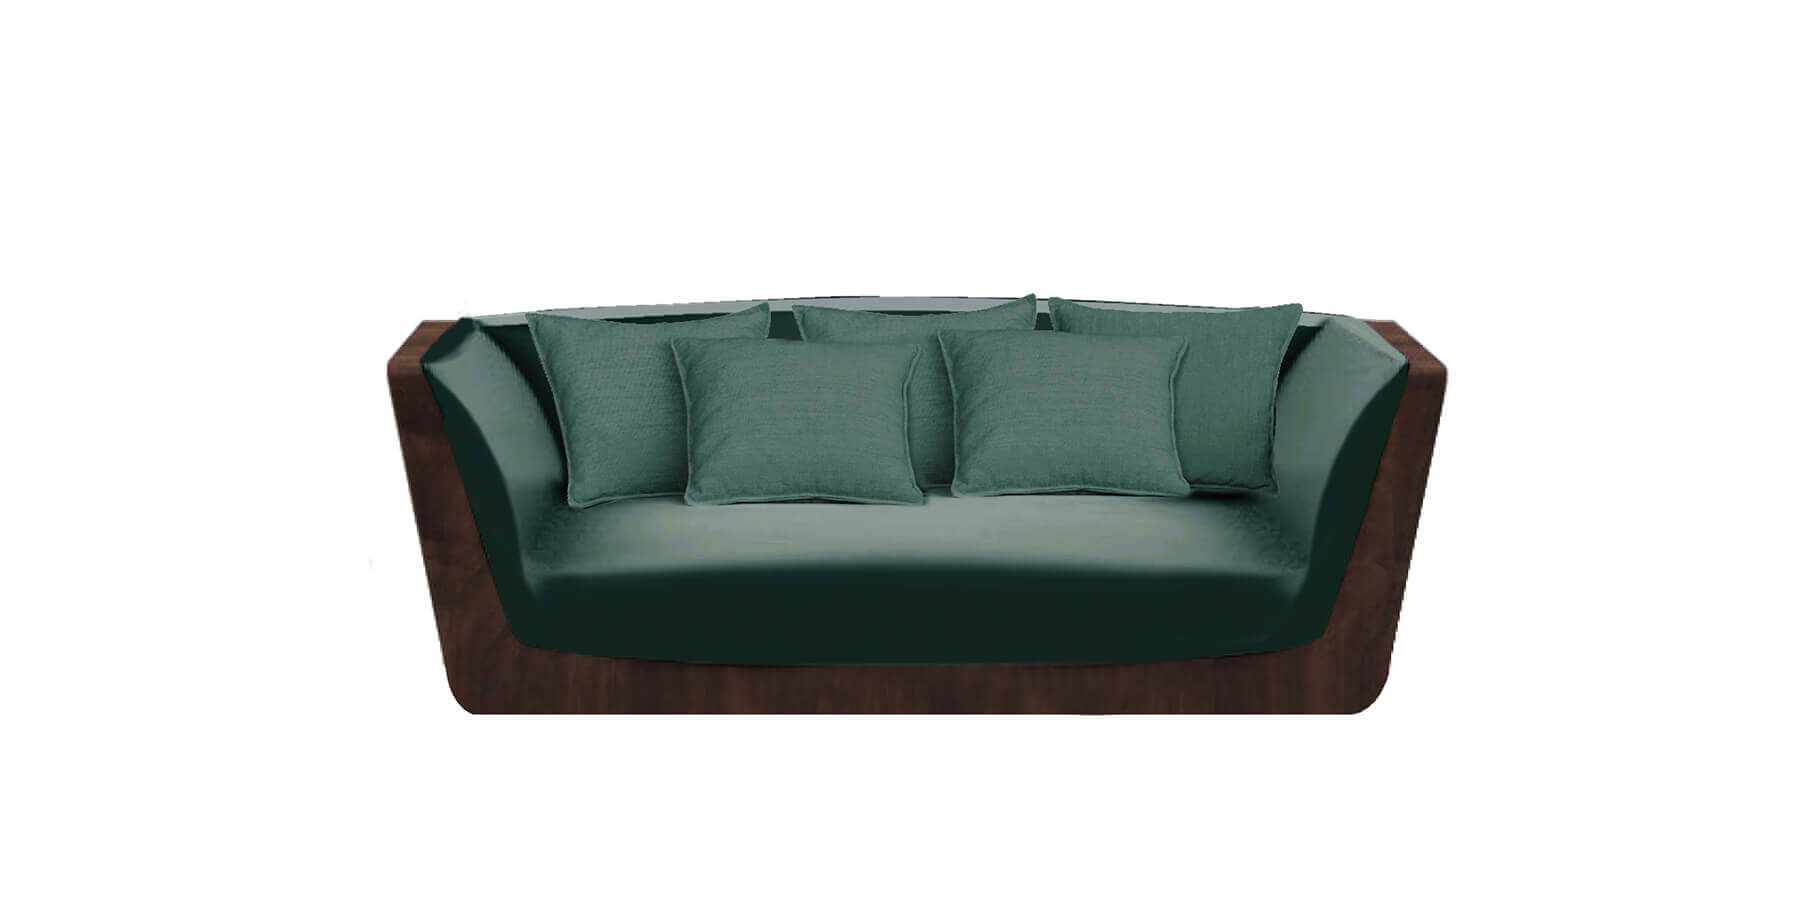 Viscaya Sofa JG Home